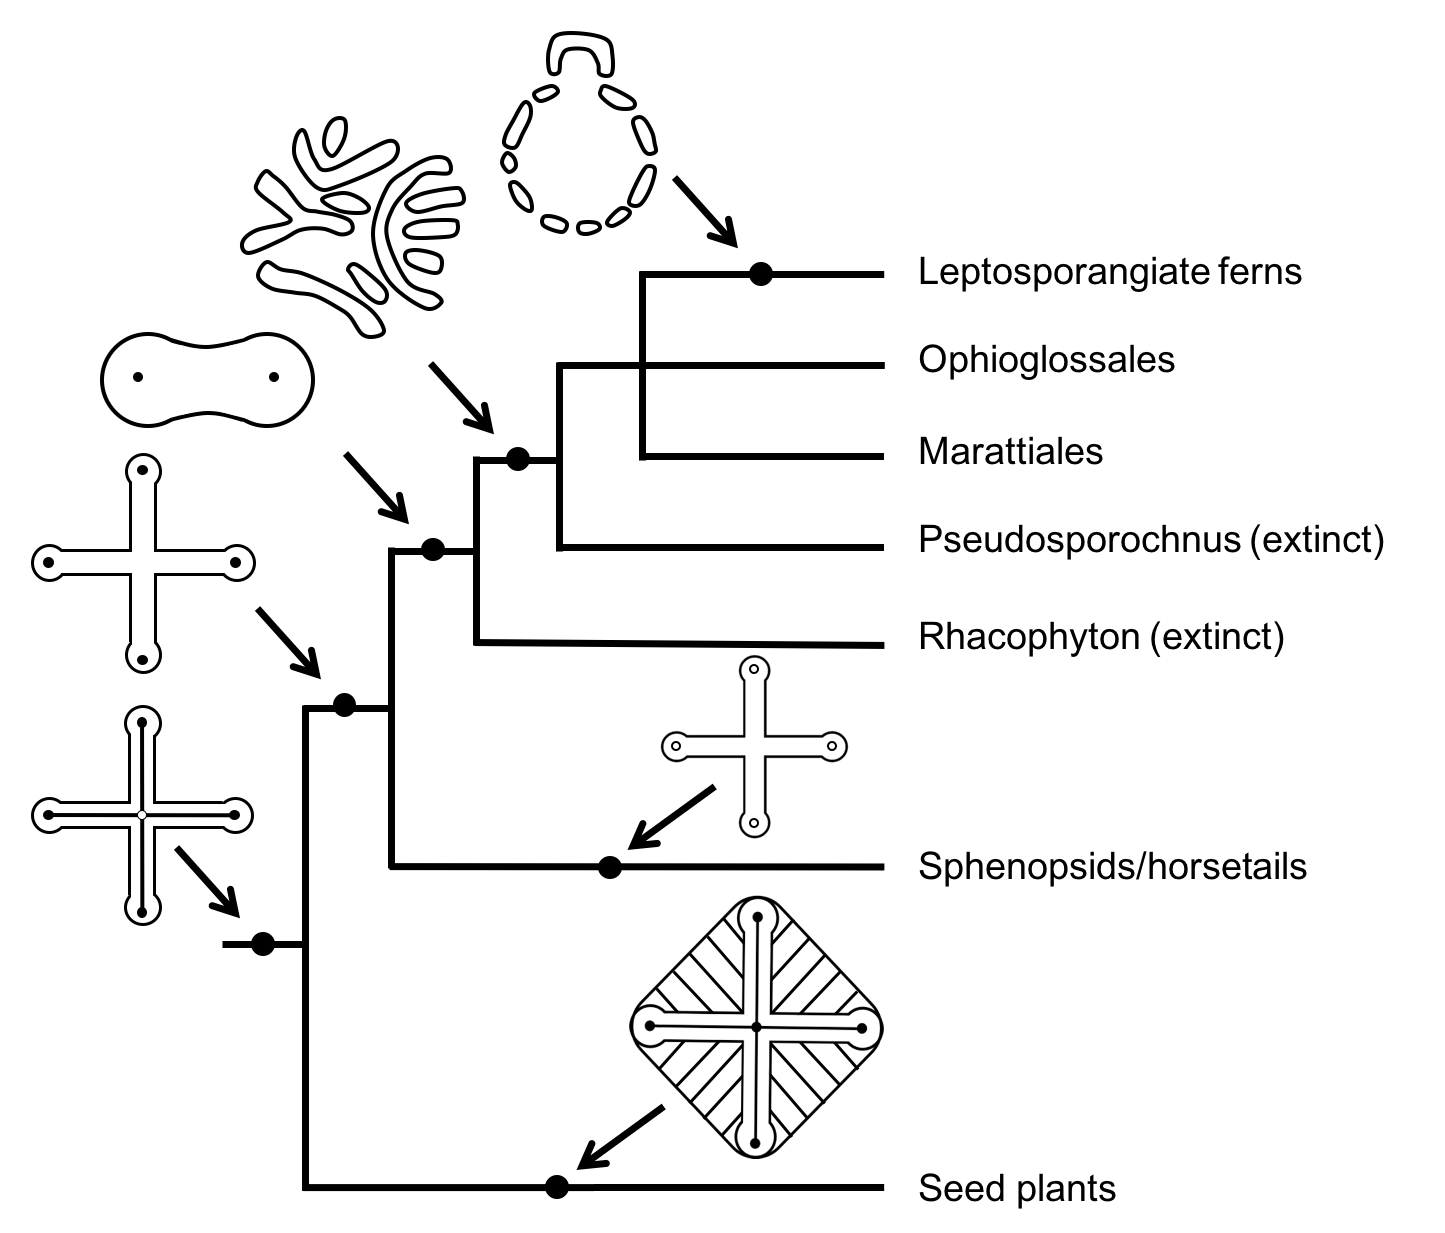 horsetail plant diagram apple home network setup about ferns american fern society stele structure of seed plants and with extinct relatives adapted